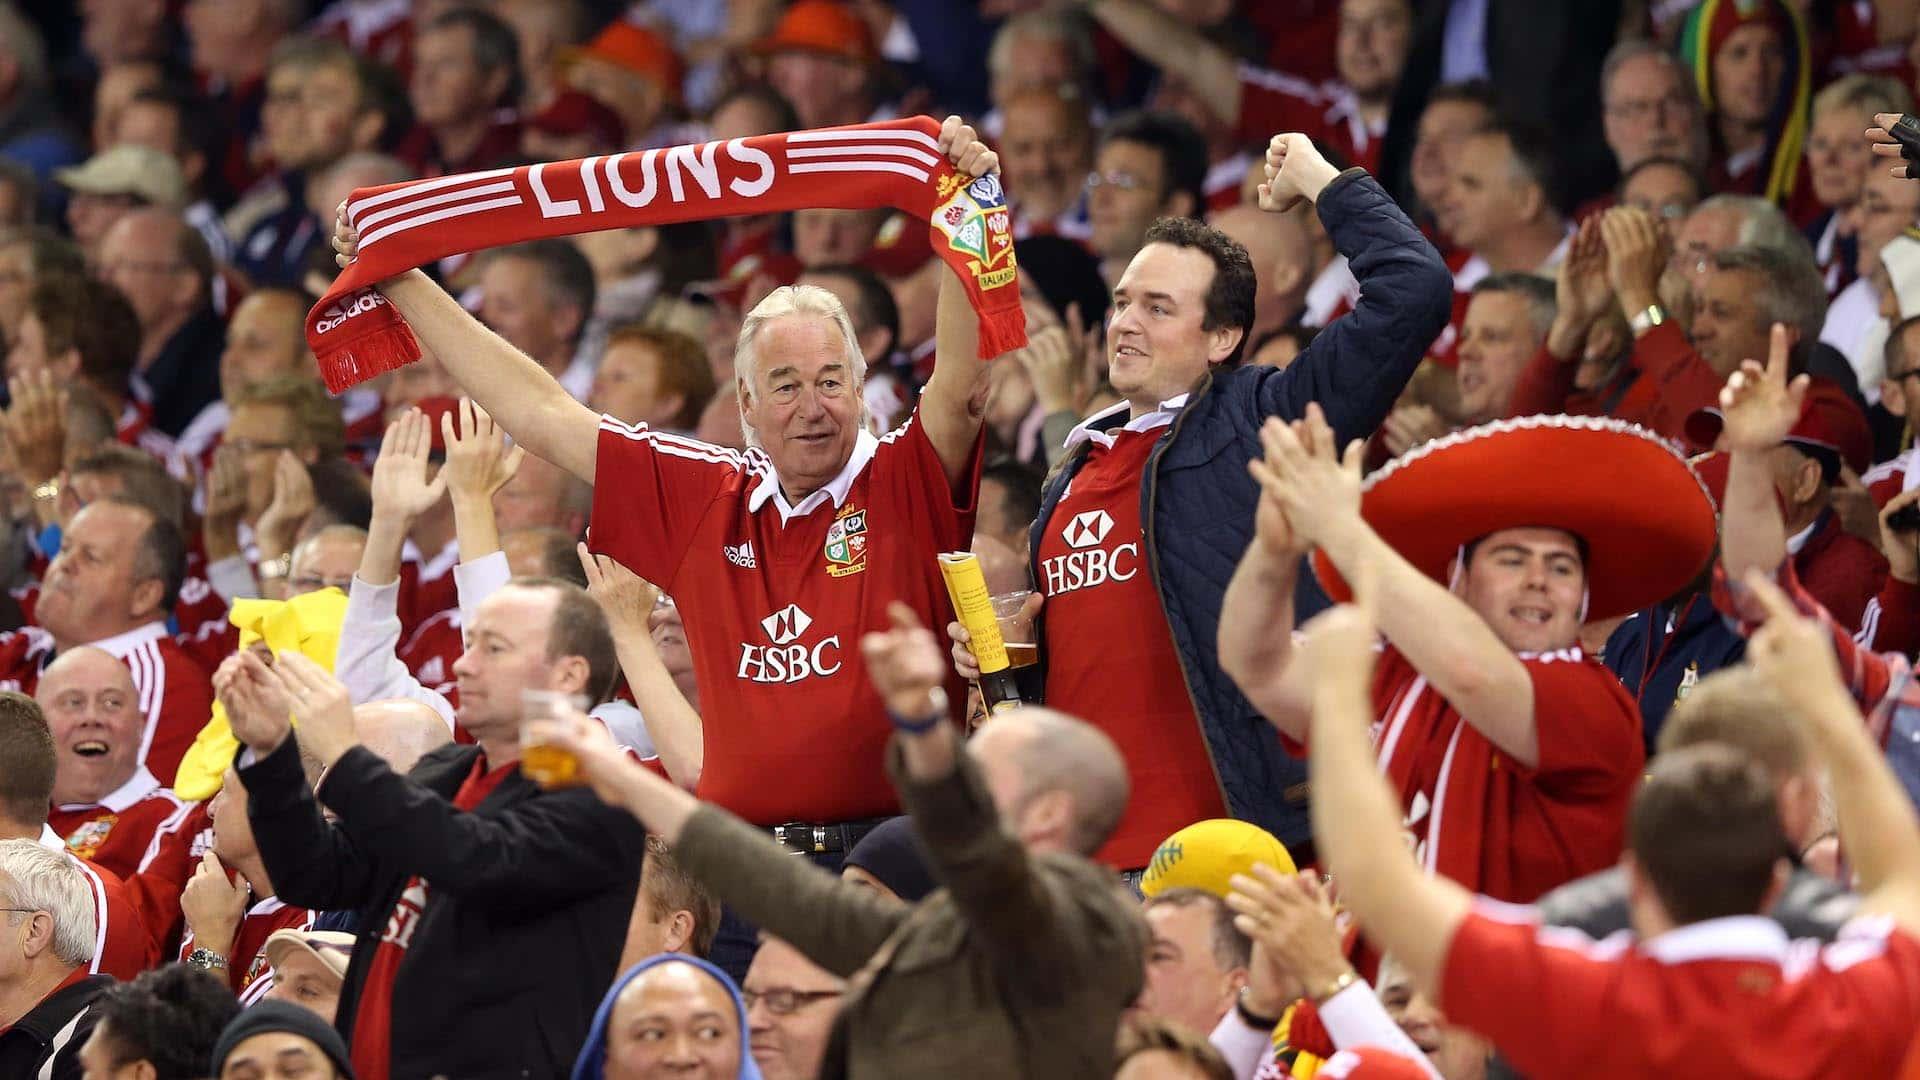 Lions fans during the game in Australia 2013